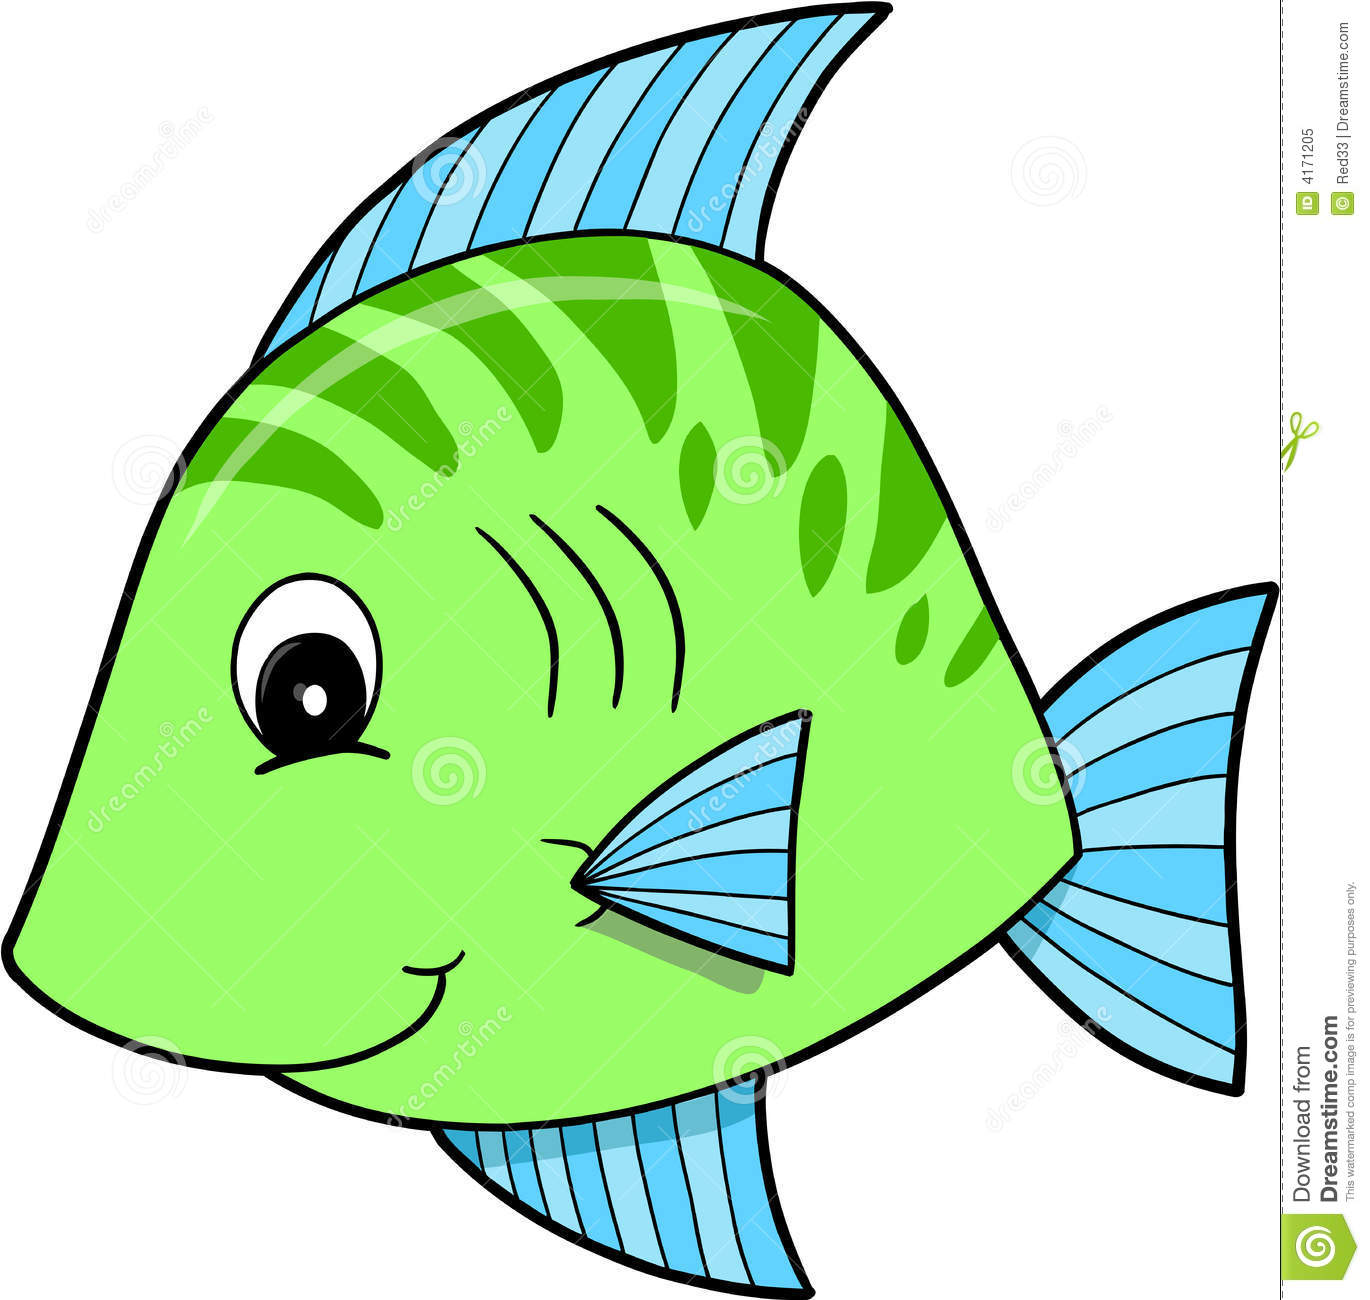 Clipart green fish png freeuse stock Cute Green Fish Vector | Clipart Panda - Free Clipart Images png freeuse stock